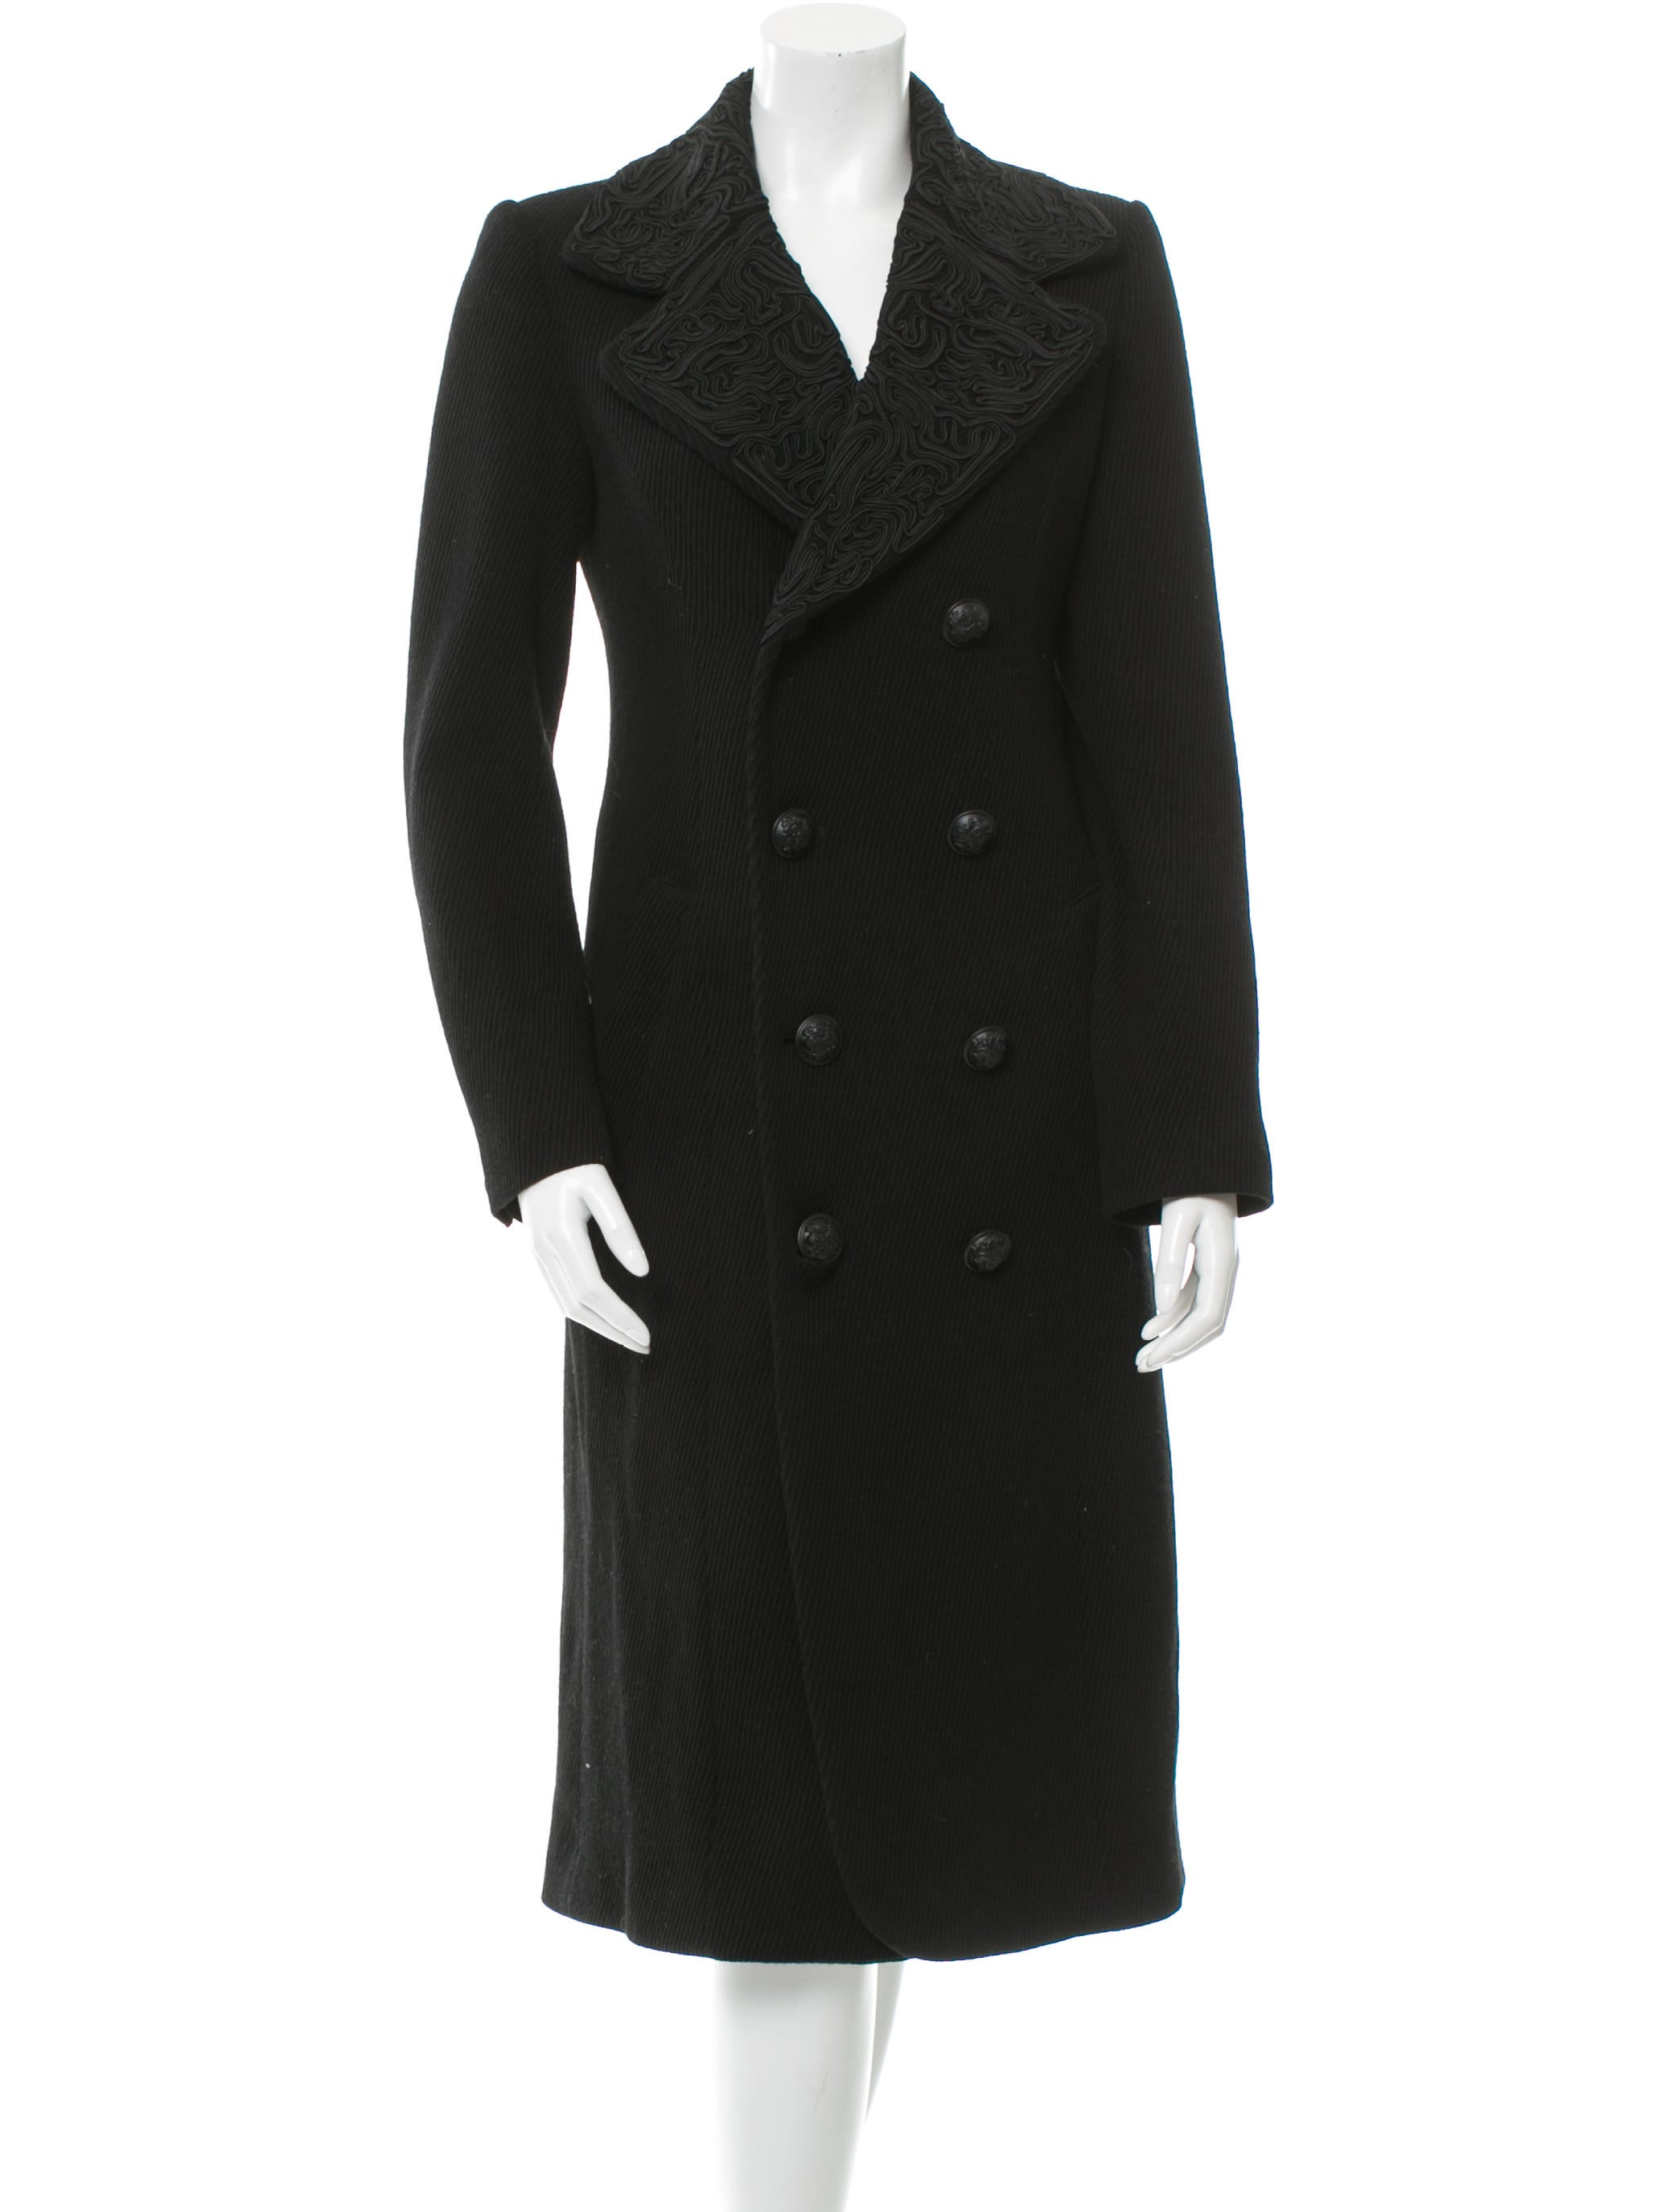 Free shipping BOTH ways on double breasted wool pea coat, from our vast selection of styles. Fast delivery, and 24/7/ real-person service with a smile. Click or call